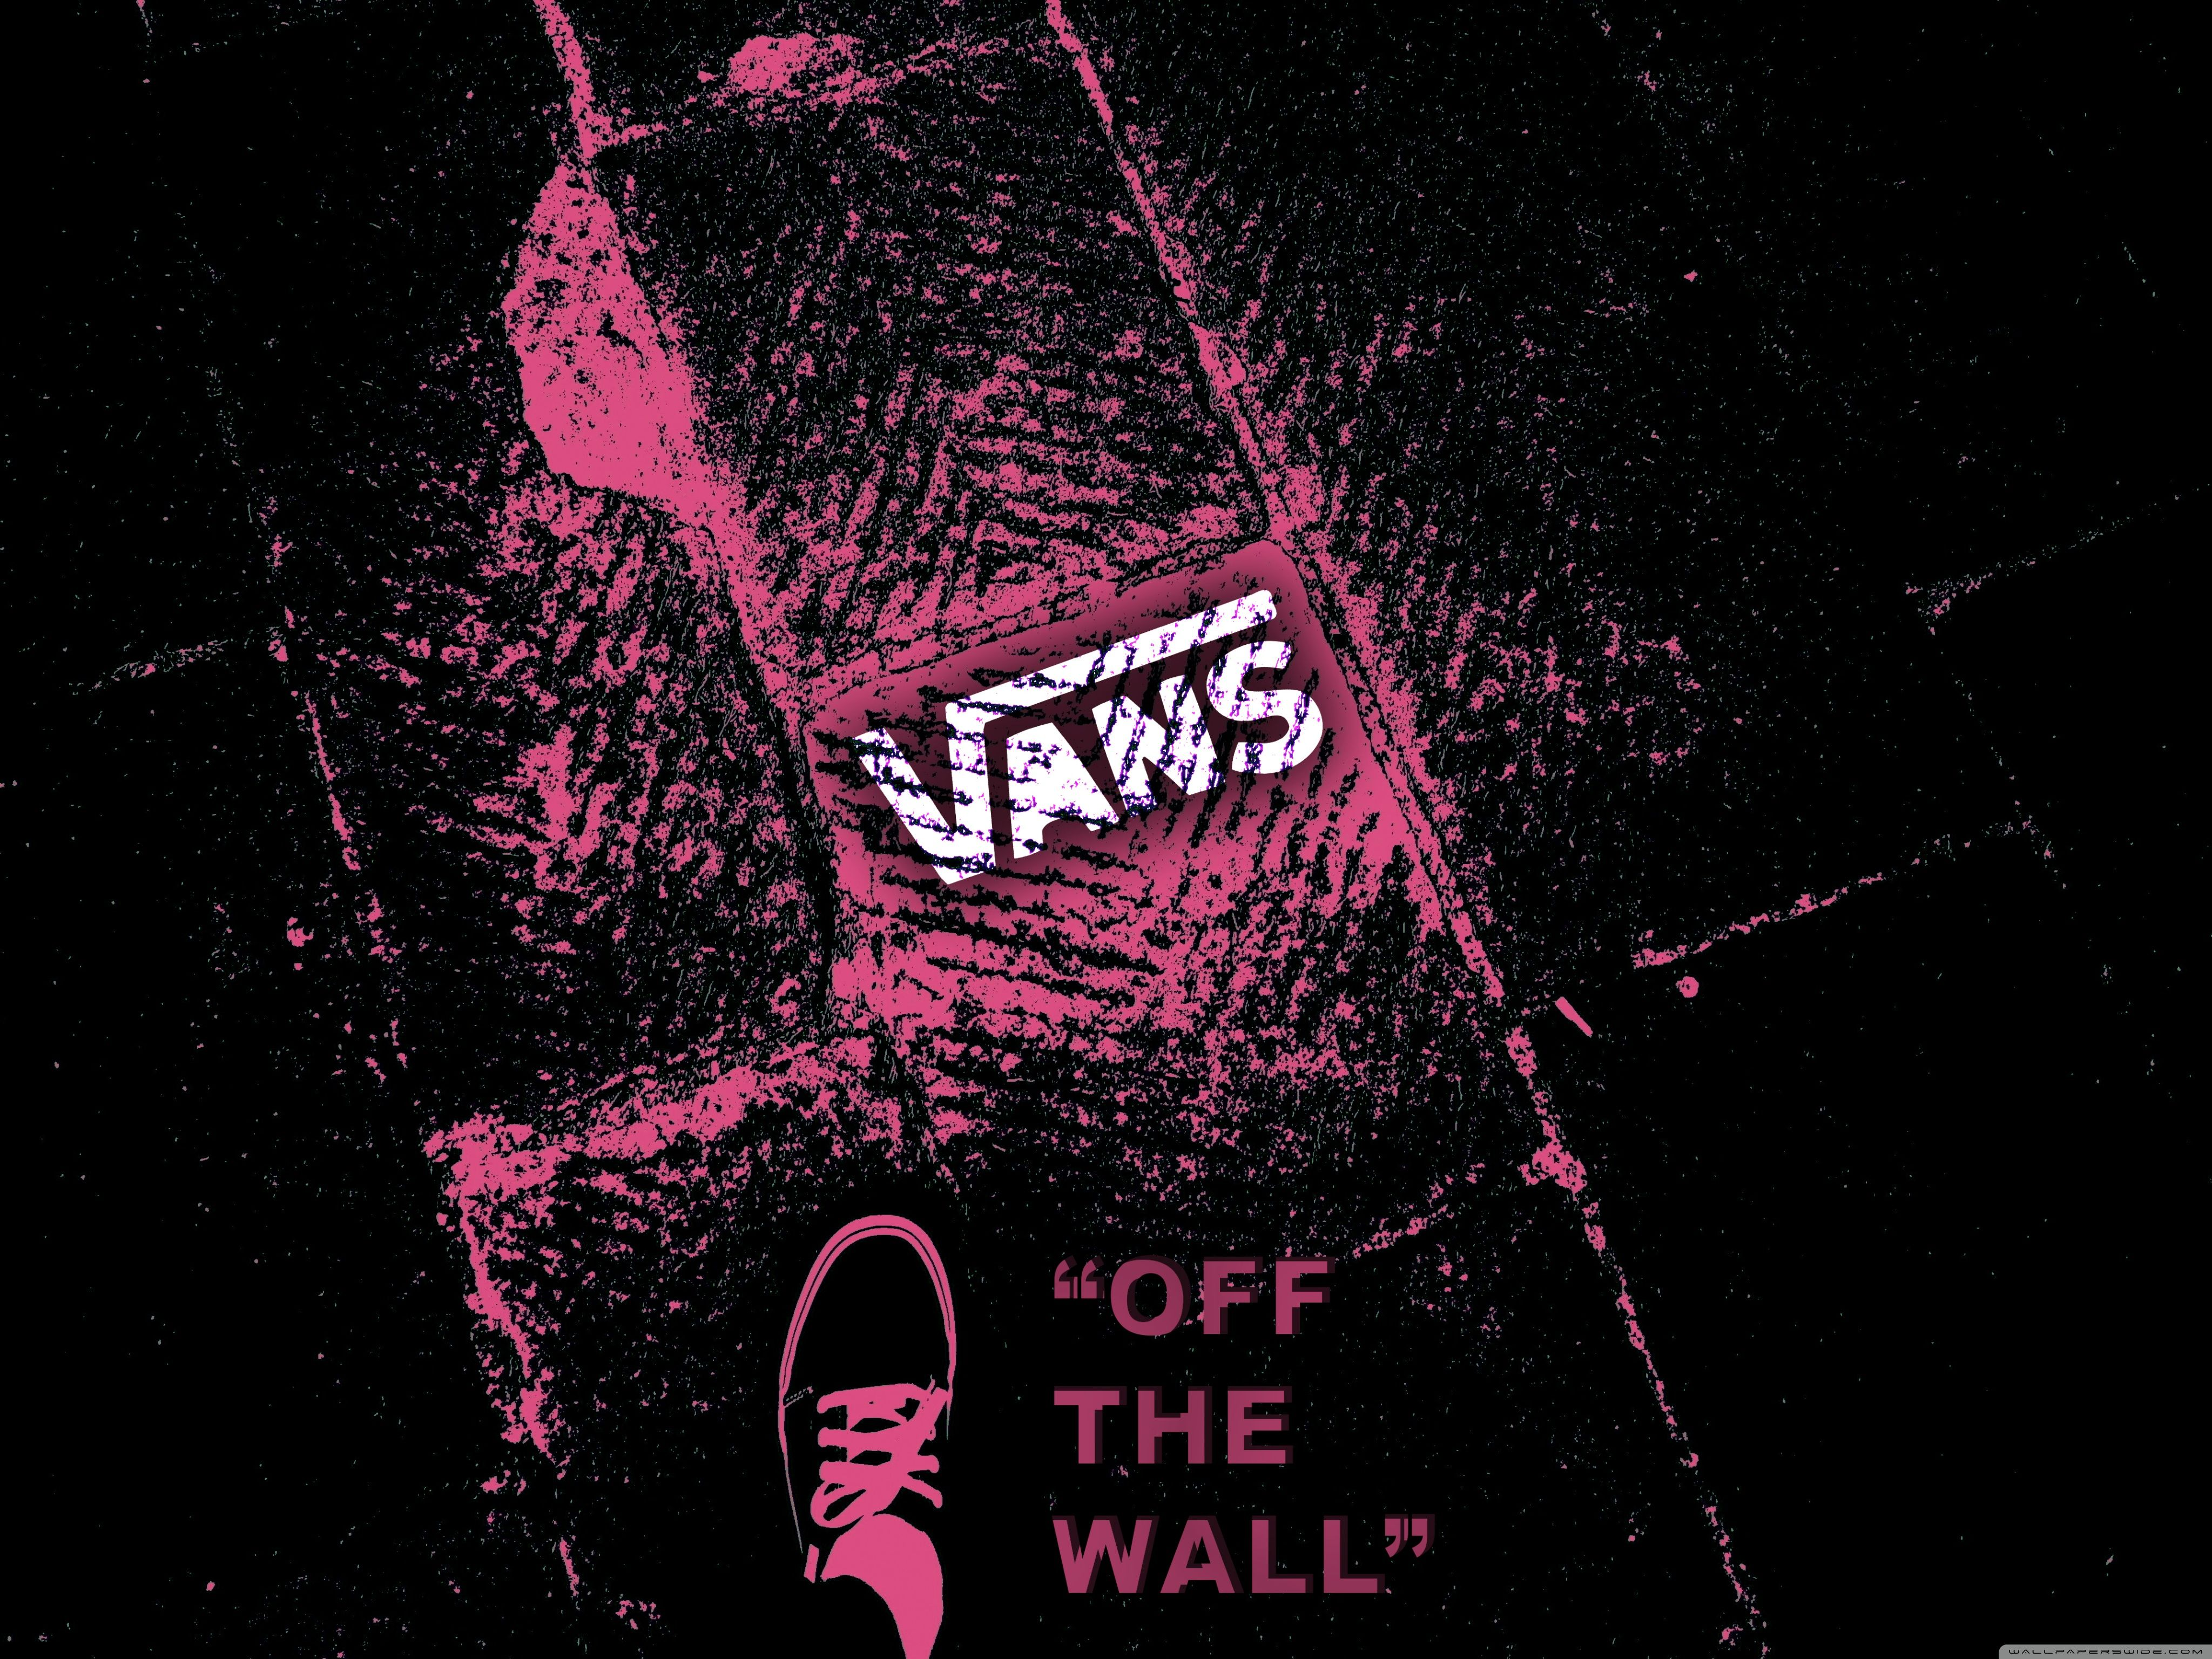 vans off the wall wallpaper